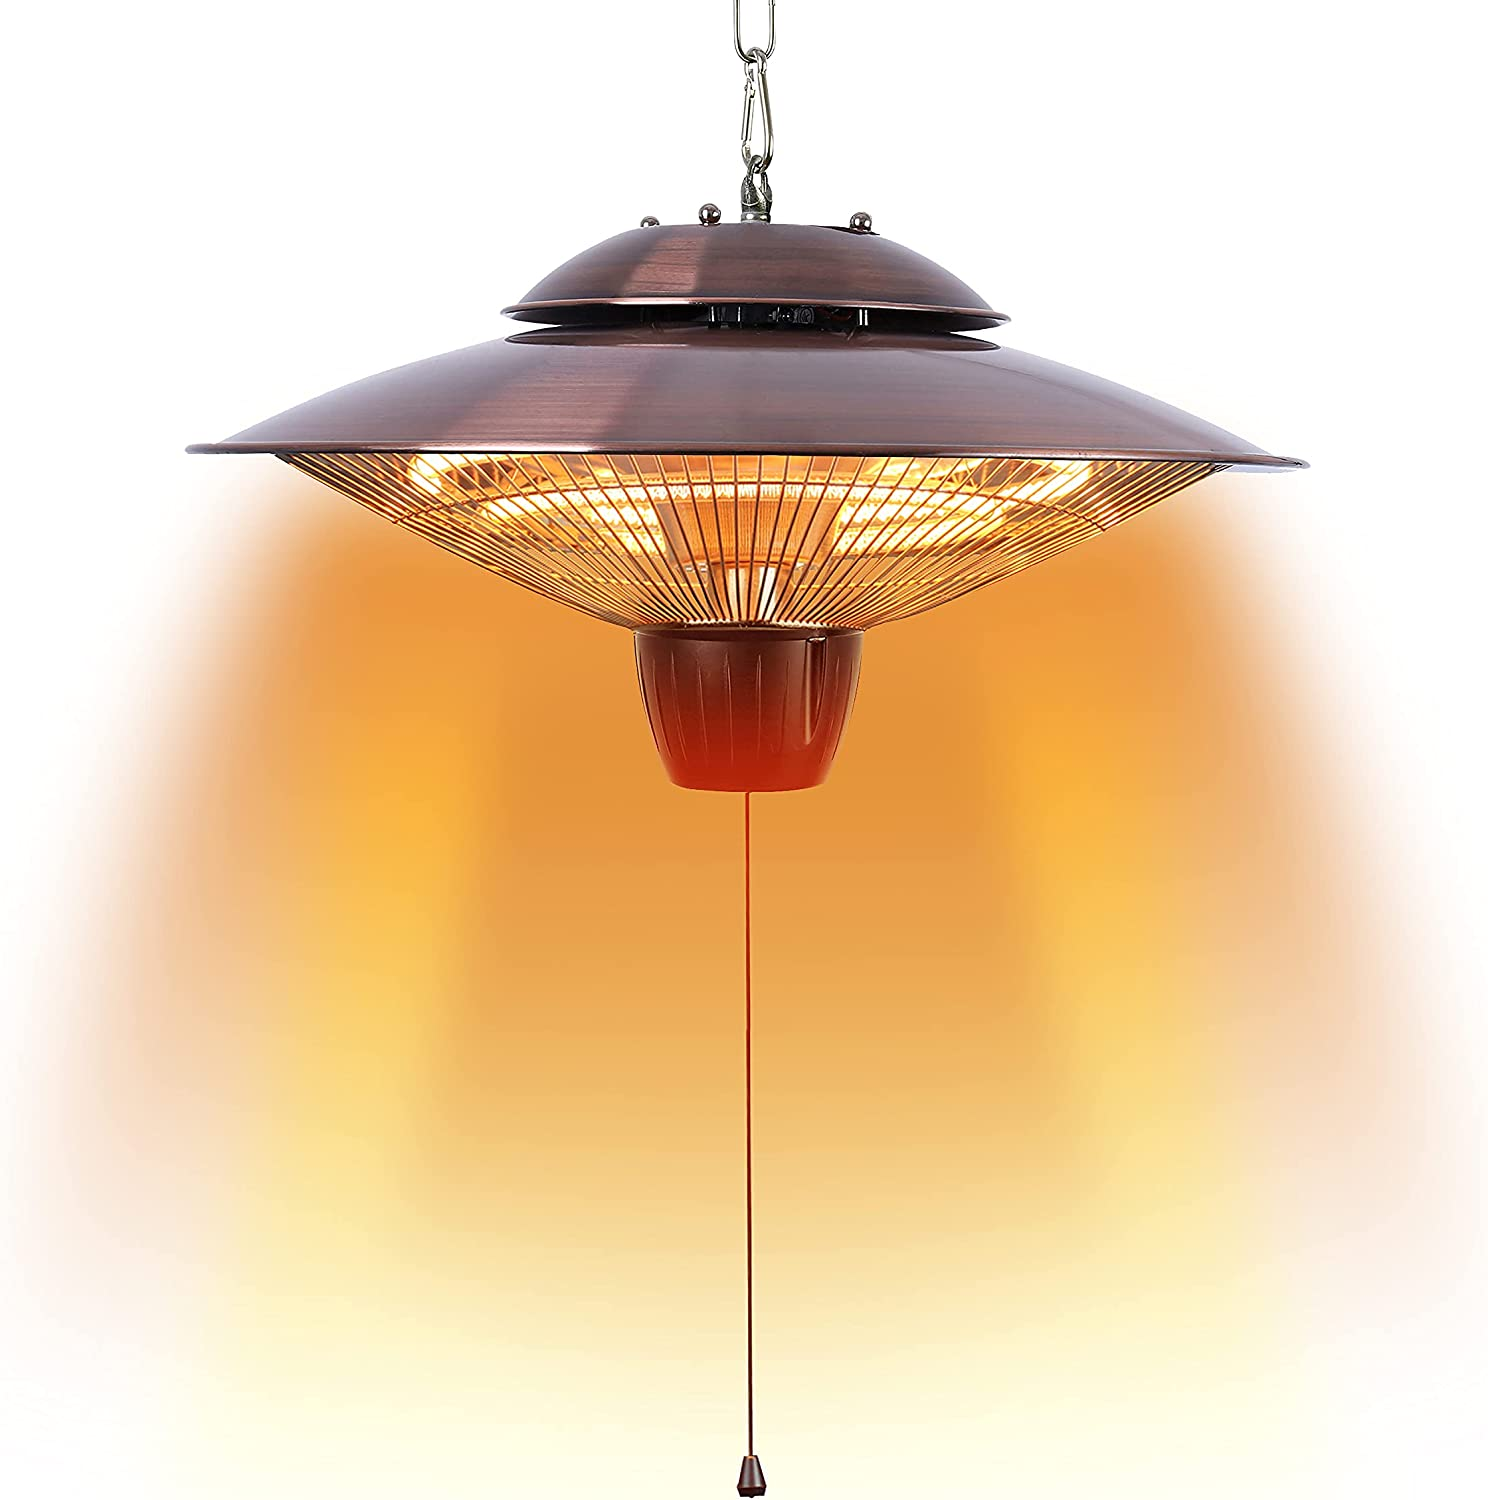 DONYER POWER Max 49% OFF 1500W Electrical Patio trust Heater Out Ceiling Mounted